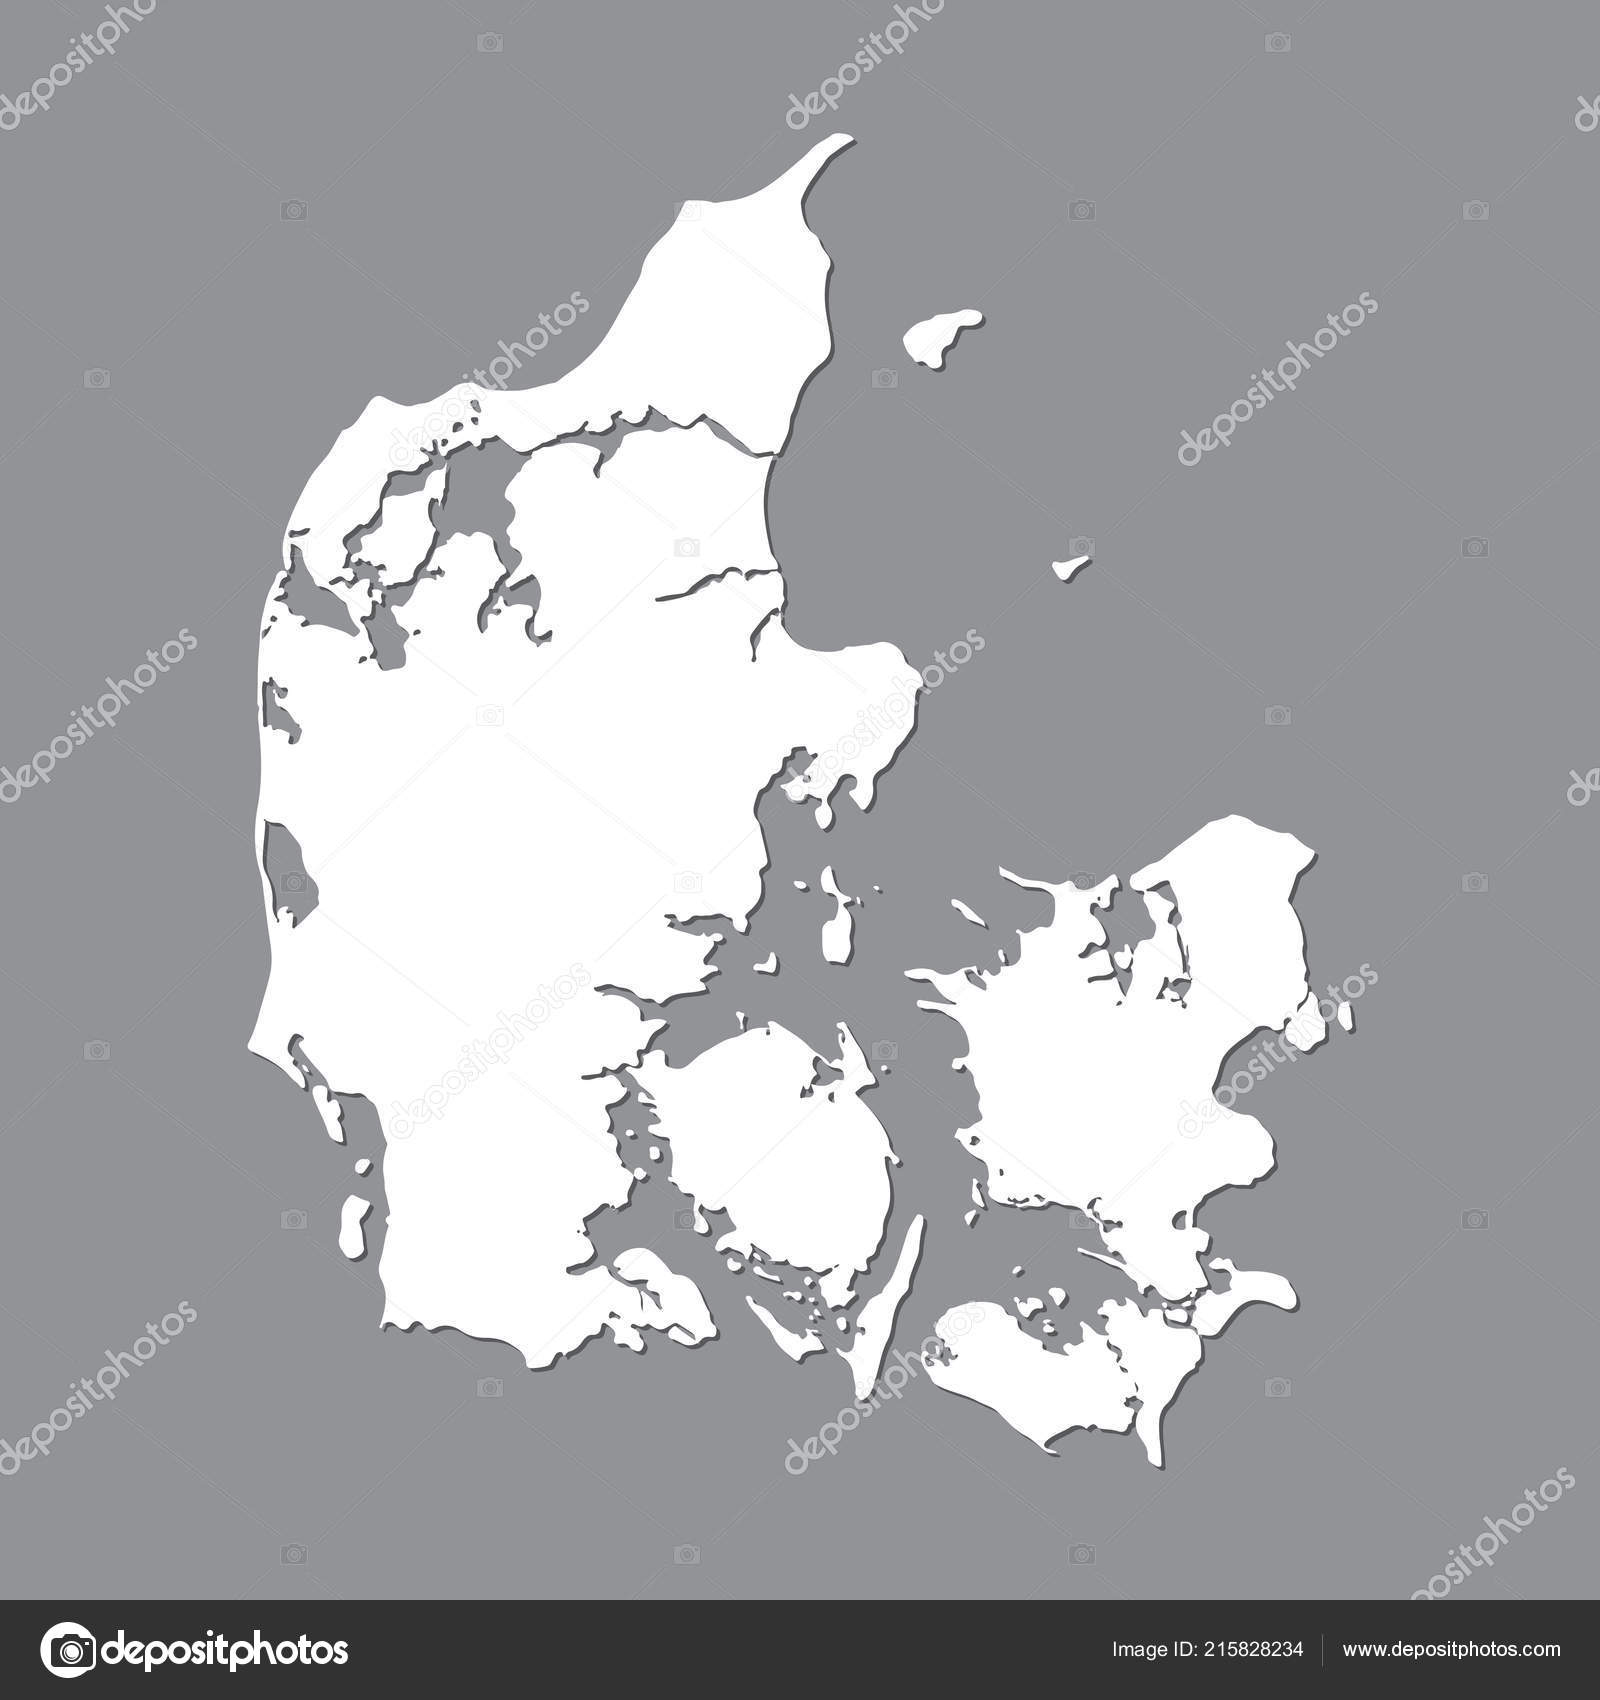 Blank Map Denmark High Quality Map Kingdom Denmark Gray Background on russian federation map, united arab emirates map, republic of mexico map, people's republic of china map, commonwealth of dominica map, republic of turkey map, republic of maldives map, republic of nauru map, republic of cyprus map, khmer kingdom map, bosnia and herzegovina map, republic of moldova map, united kingdom map, state of israel map, republic of croatia map, antigua and barbuda map, republic of korea map, state of new mexico map, republic of kenya map,